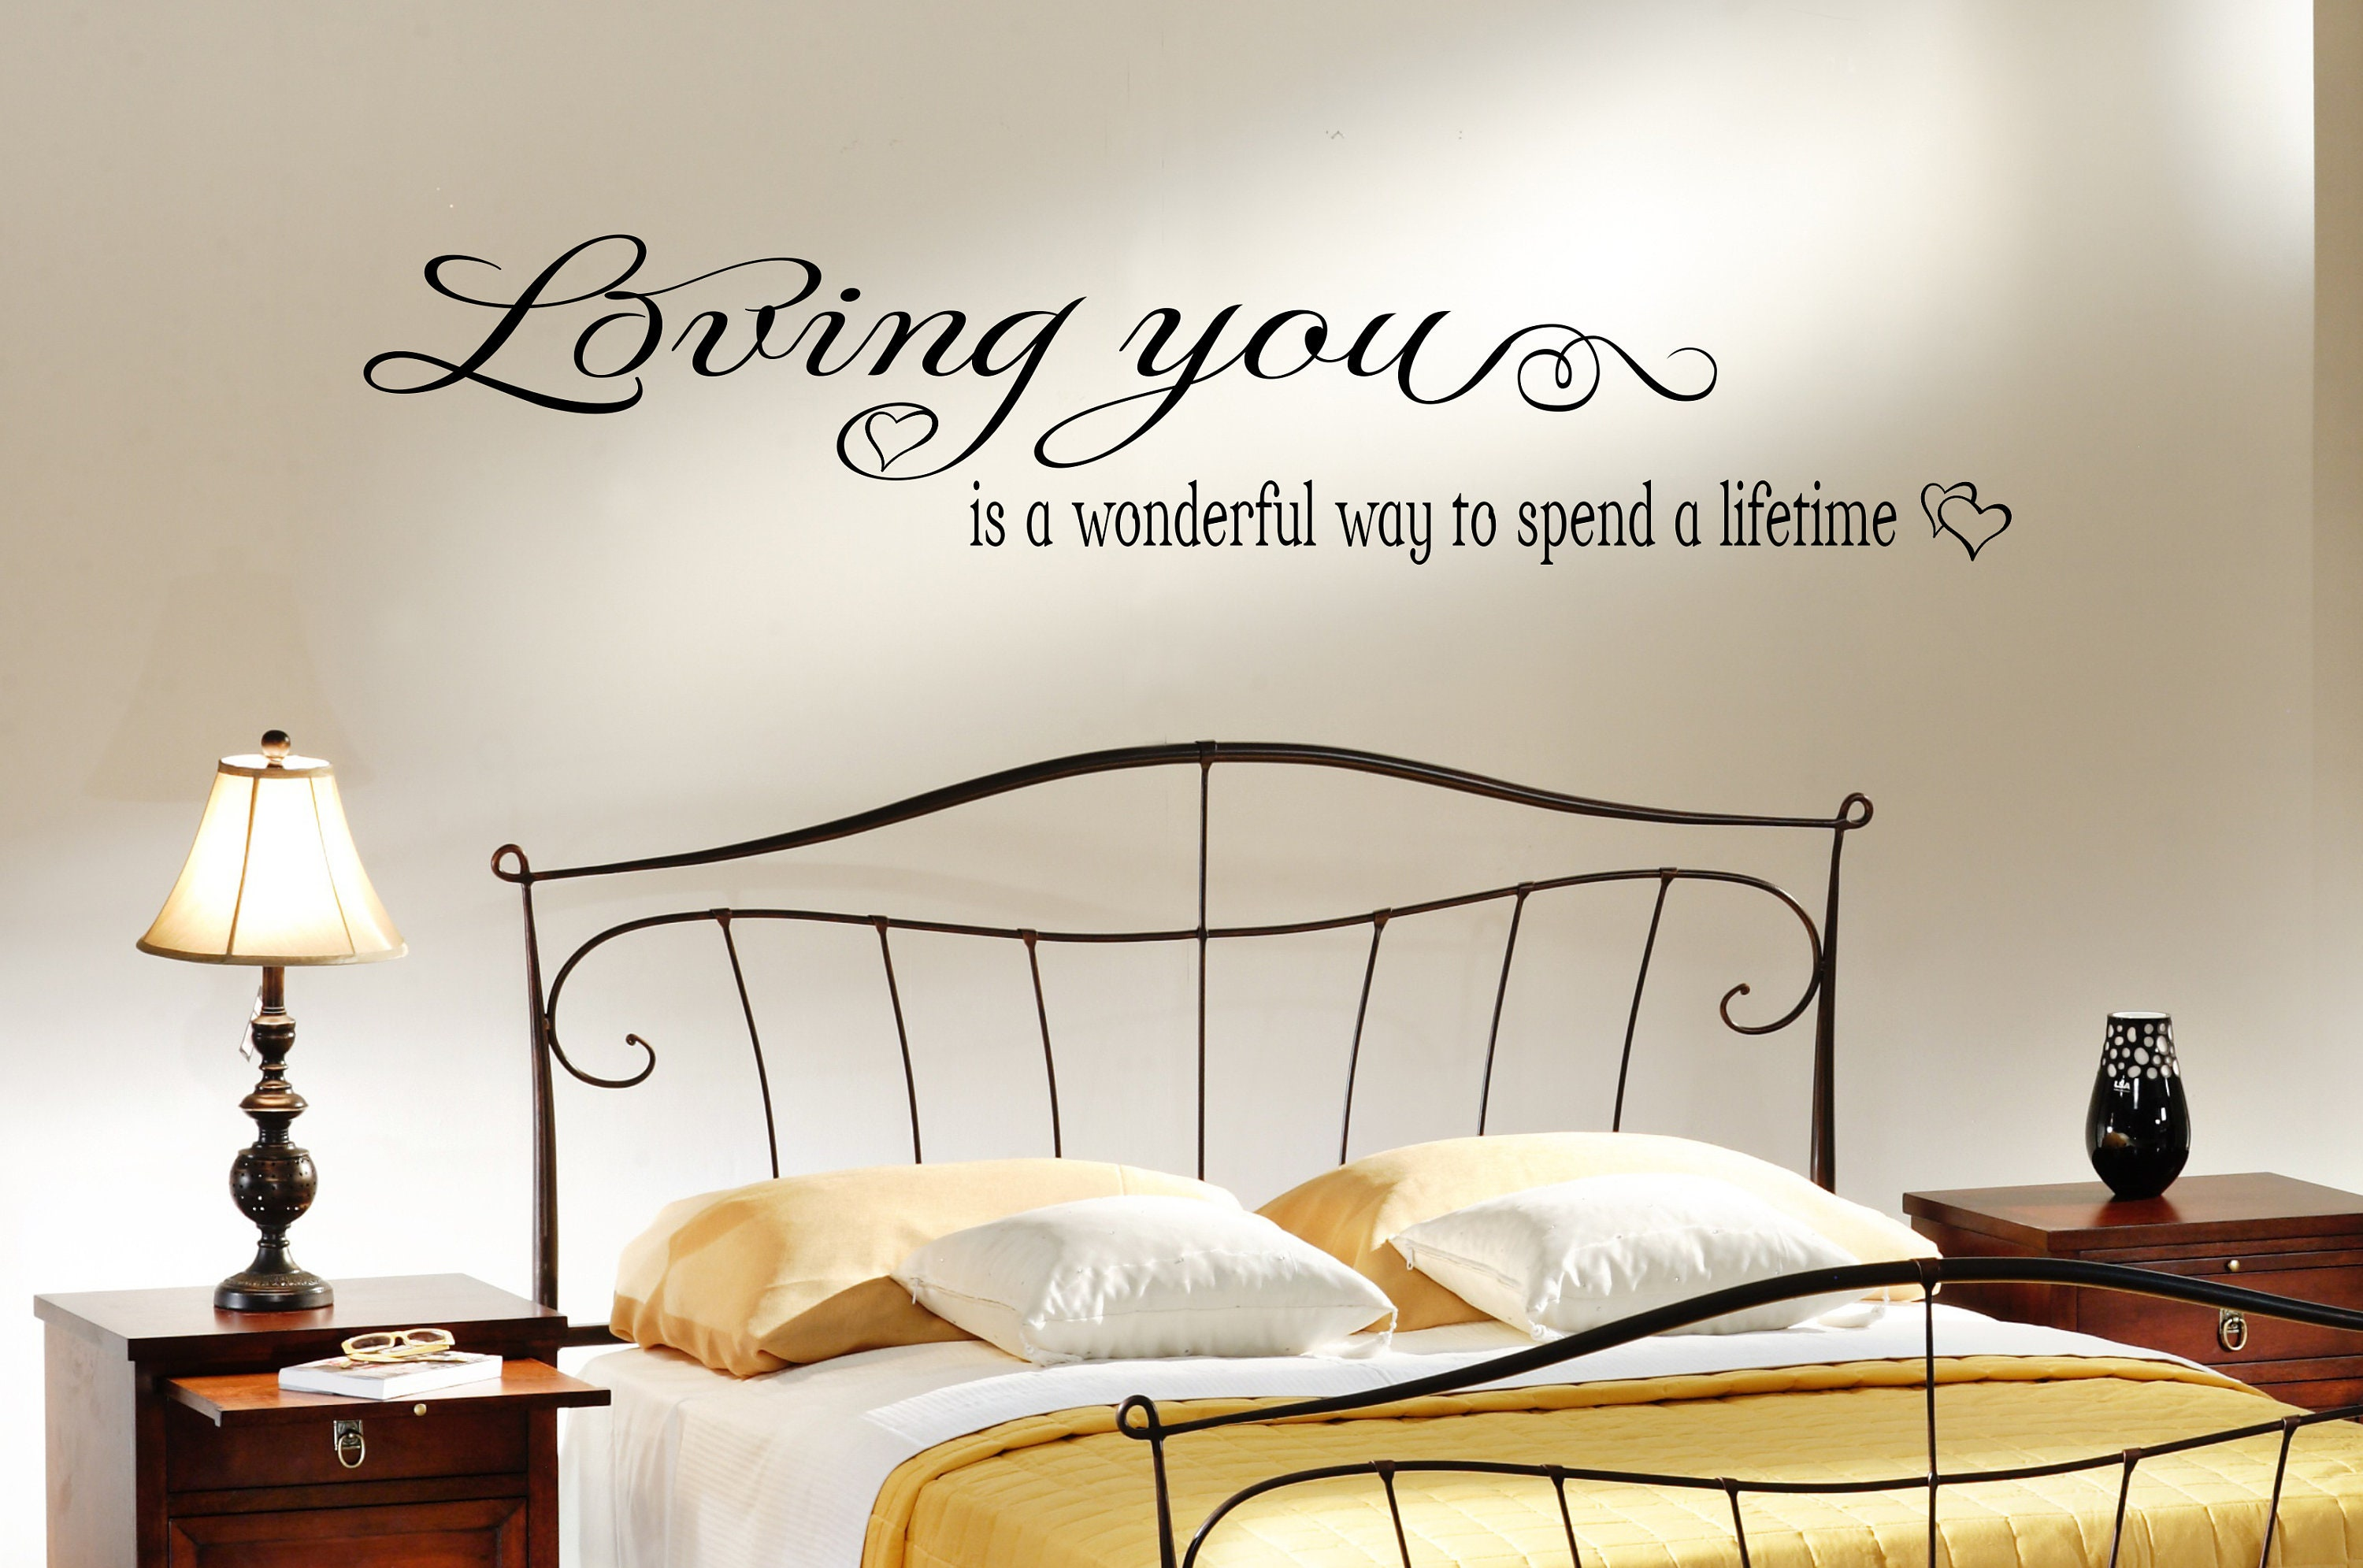 Bedroom Wall Quotes Loving You Love Quotes Decals Love Etsy